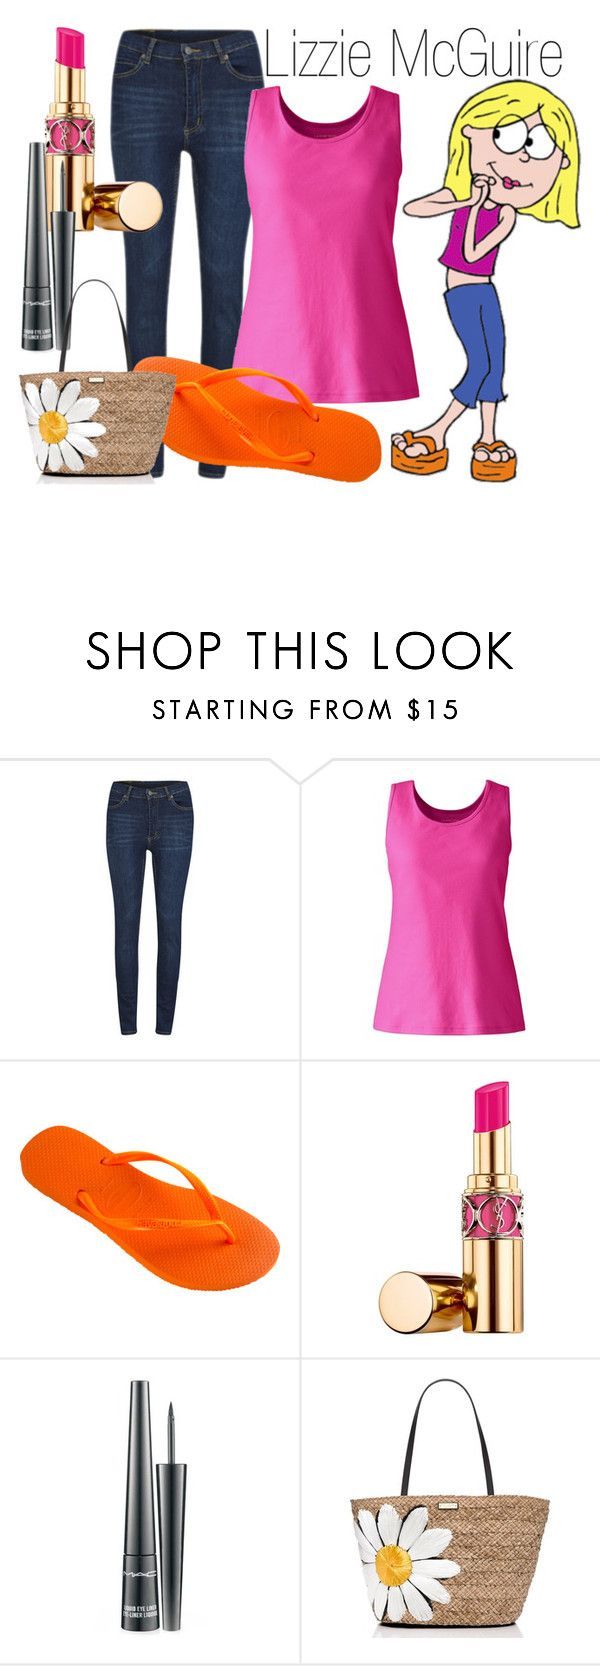 """""""Lizzie McGuire~ DisneyBound"""" by basic-disney ❤ liked on Polyvore featuring McGuire, Cheap Monday, Lands' End, Havaianas, Yves Saint Laurent, MAC Cosmetics and Kate Spade"""